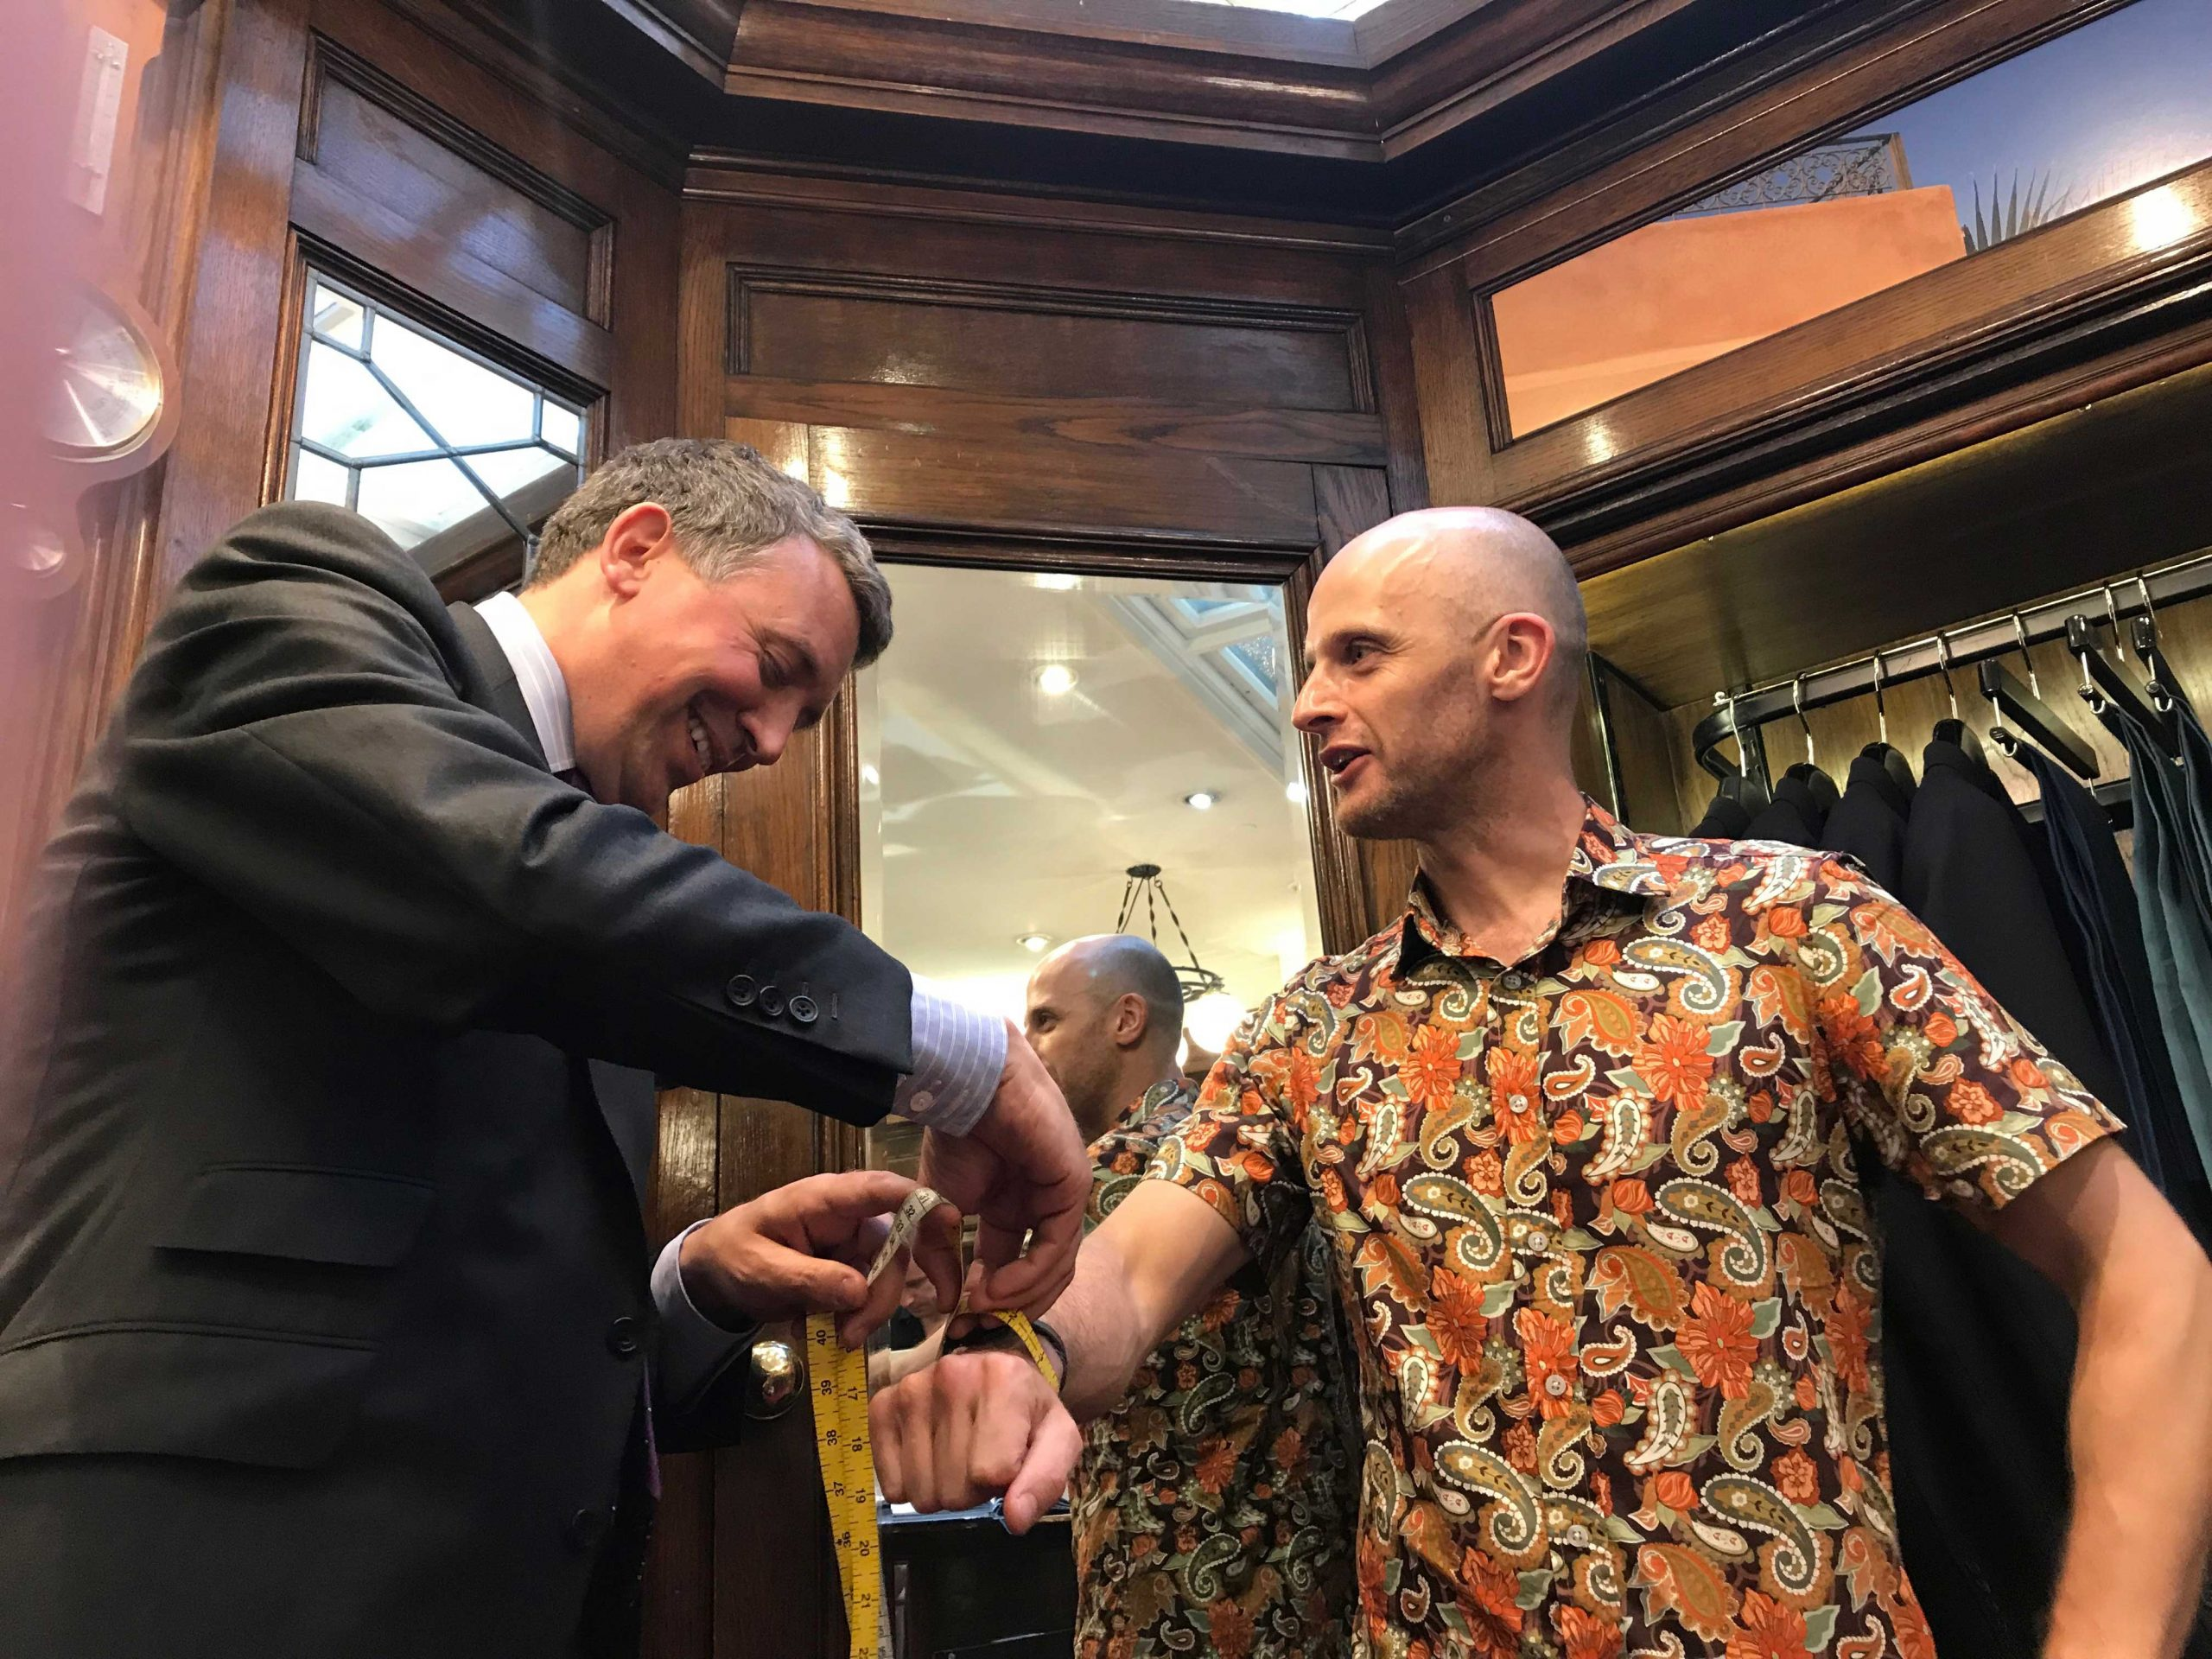 bespoke shirts being measured at Turnbull and asser